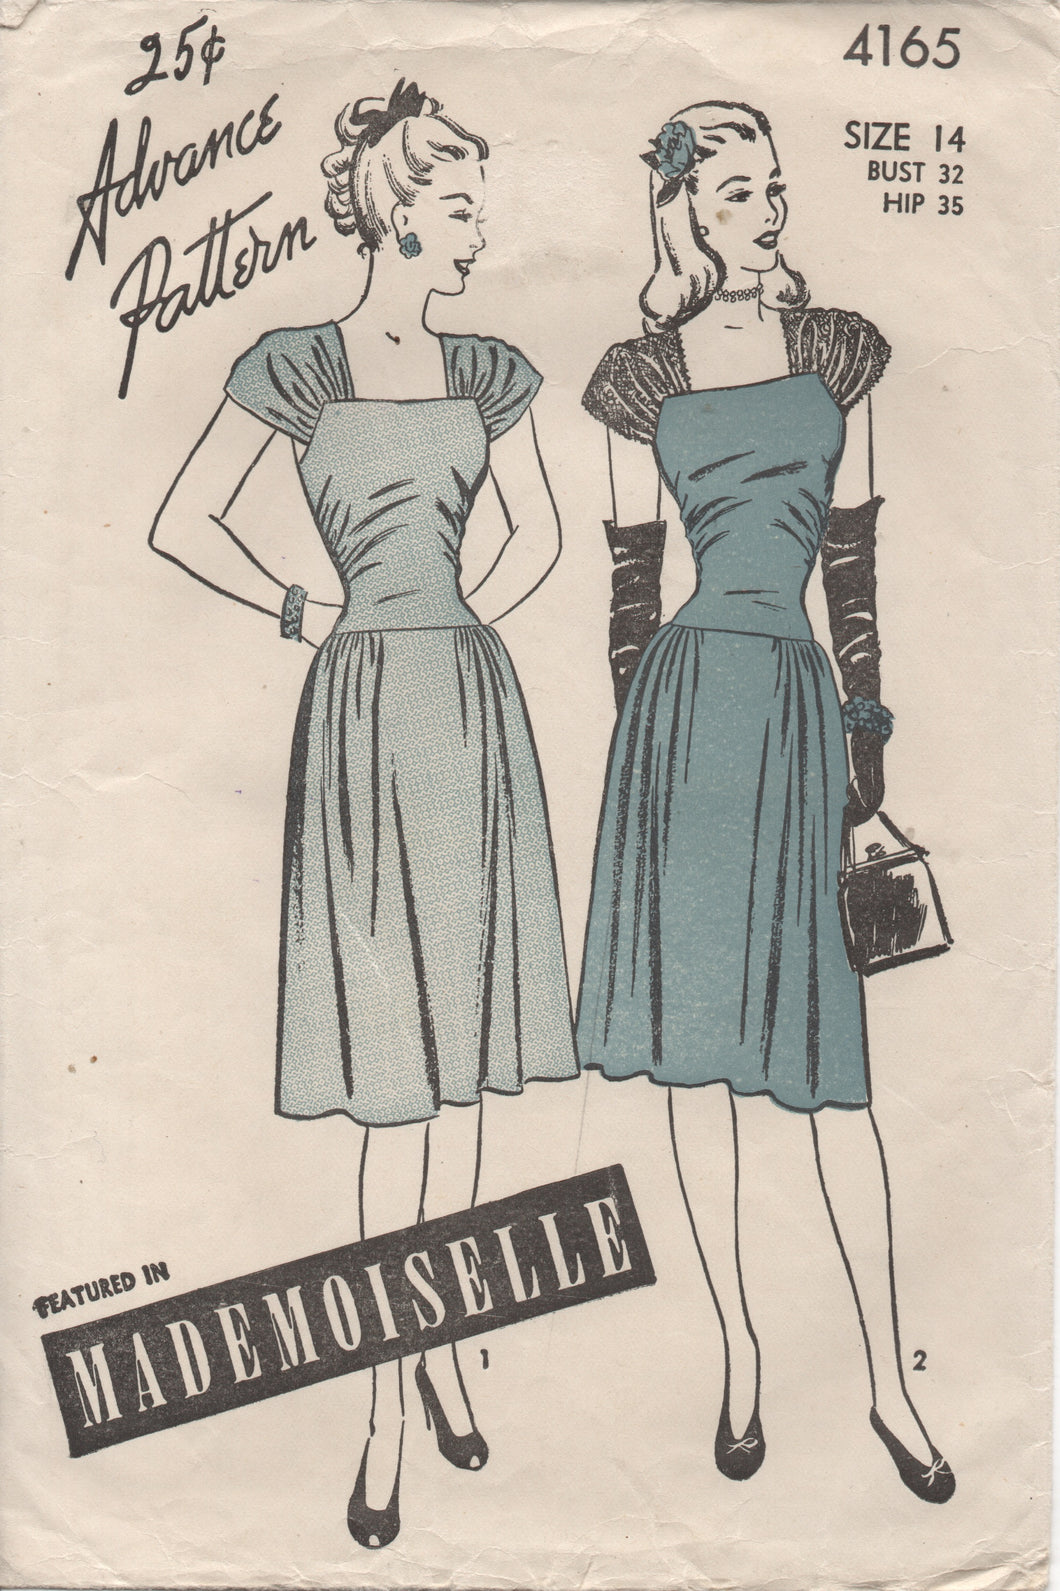 1940's Advance One Piece Dress with Cap Sleeves, Drop Waist and Side gather Skirt - Bust 32